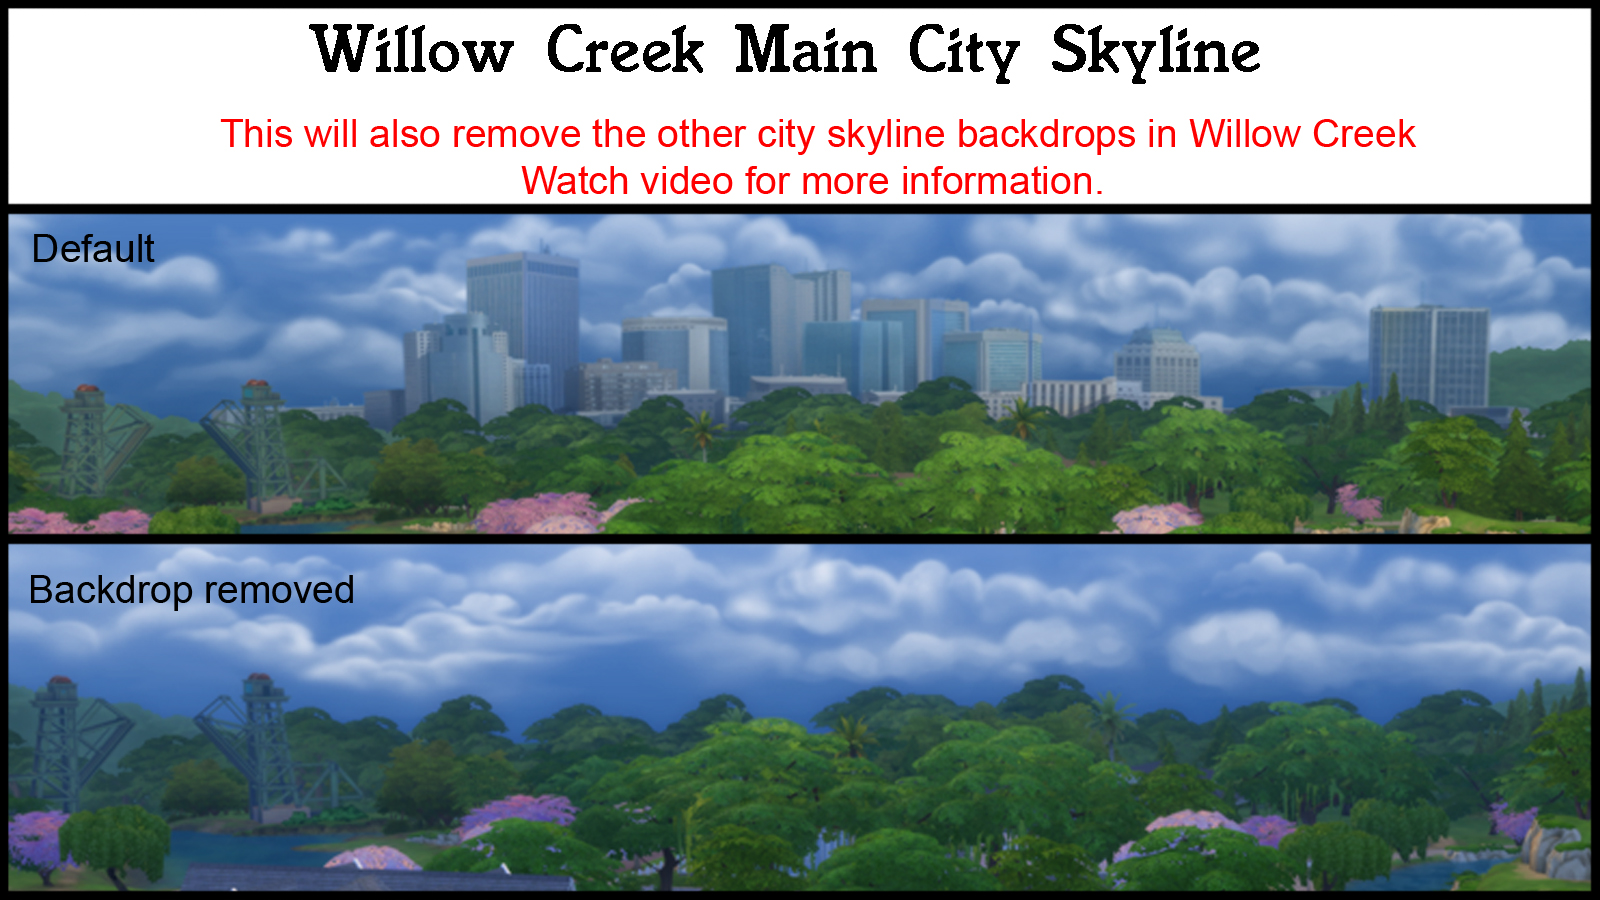 Mod The Sims - City Skyline Backdrop REMOVER (Overwrite)